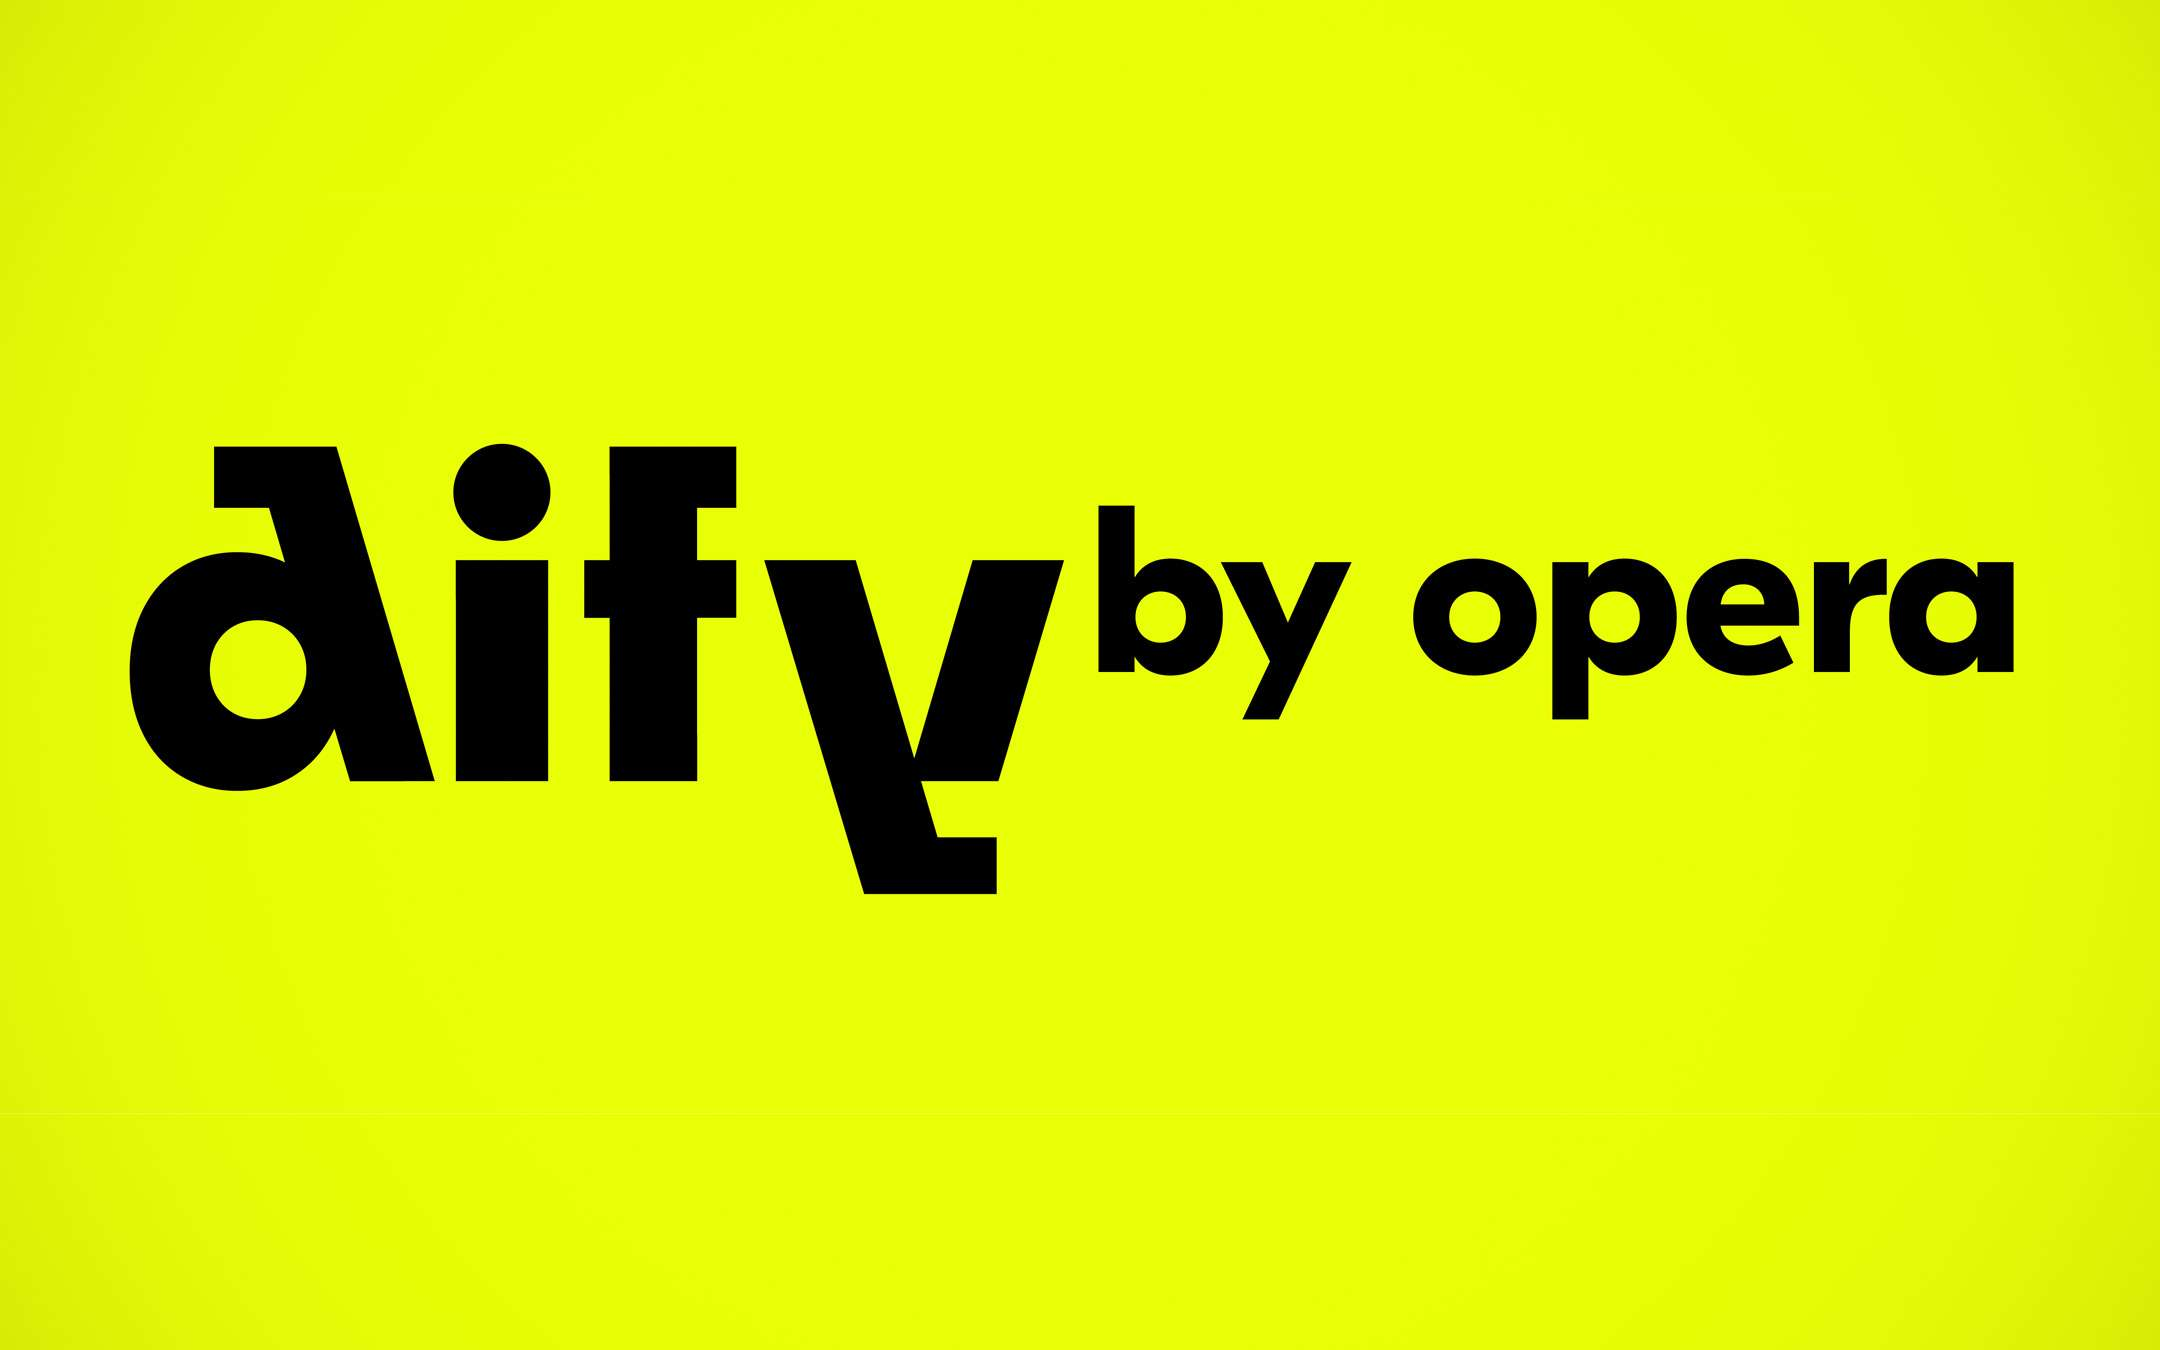 Opera puts cashback in the browser with Dify